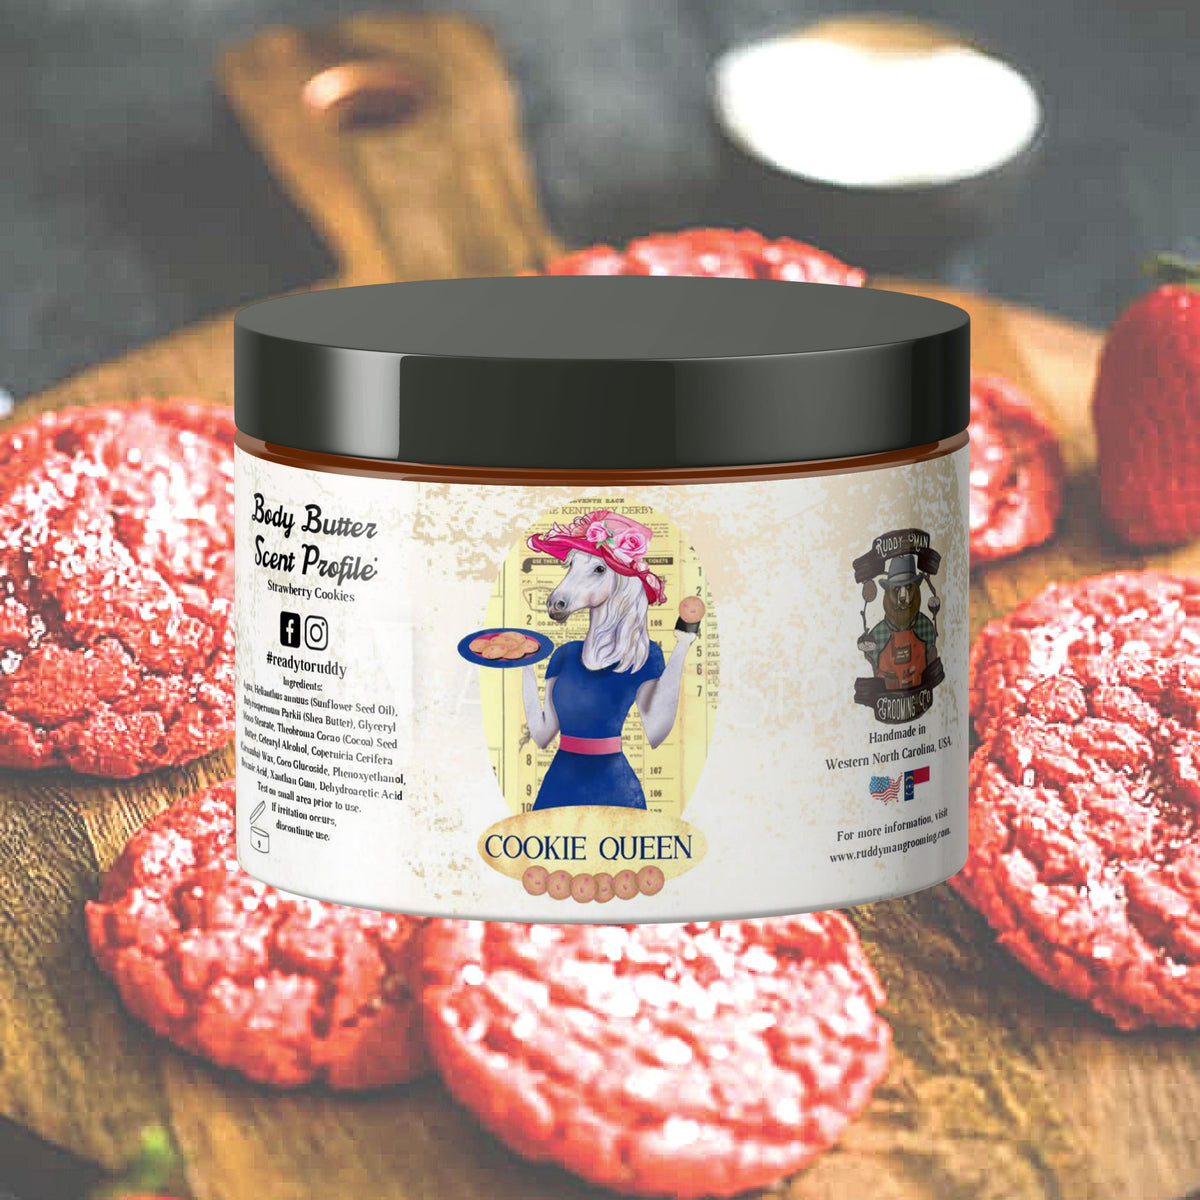 Cookie Queen-A Strawberry Cookie Body Butter